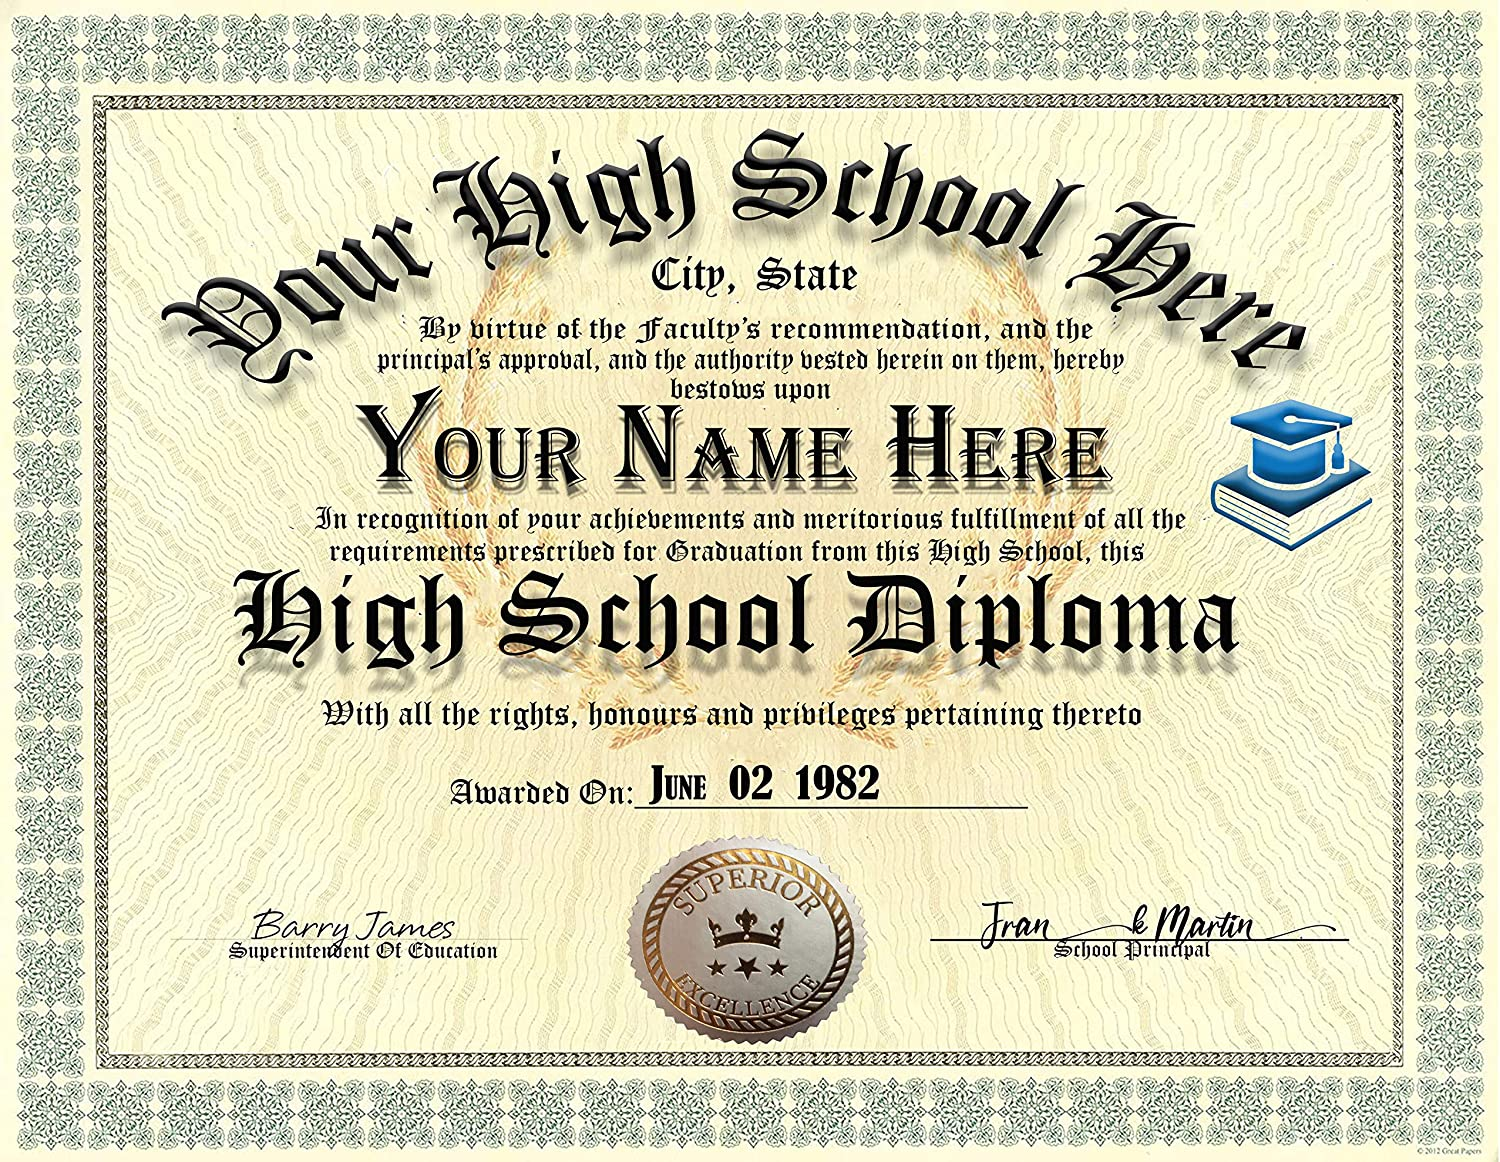 High School Novelty Diploma Personalized Custom Printed with Your personal Info PLUS Navy Blue gold embossed quality Certificate Cover - Premium Quality - 8.5